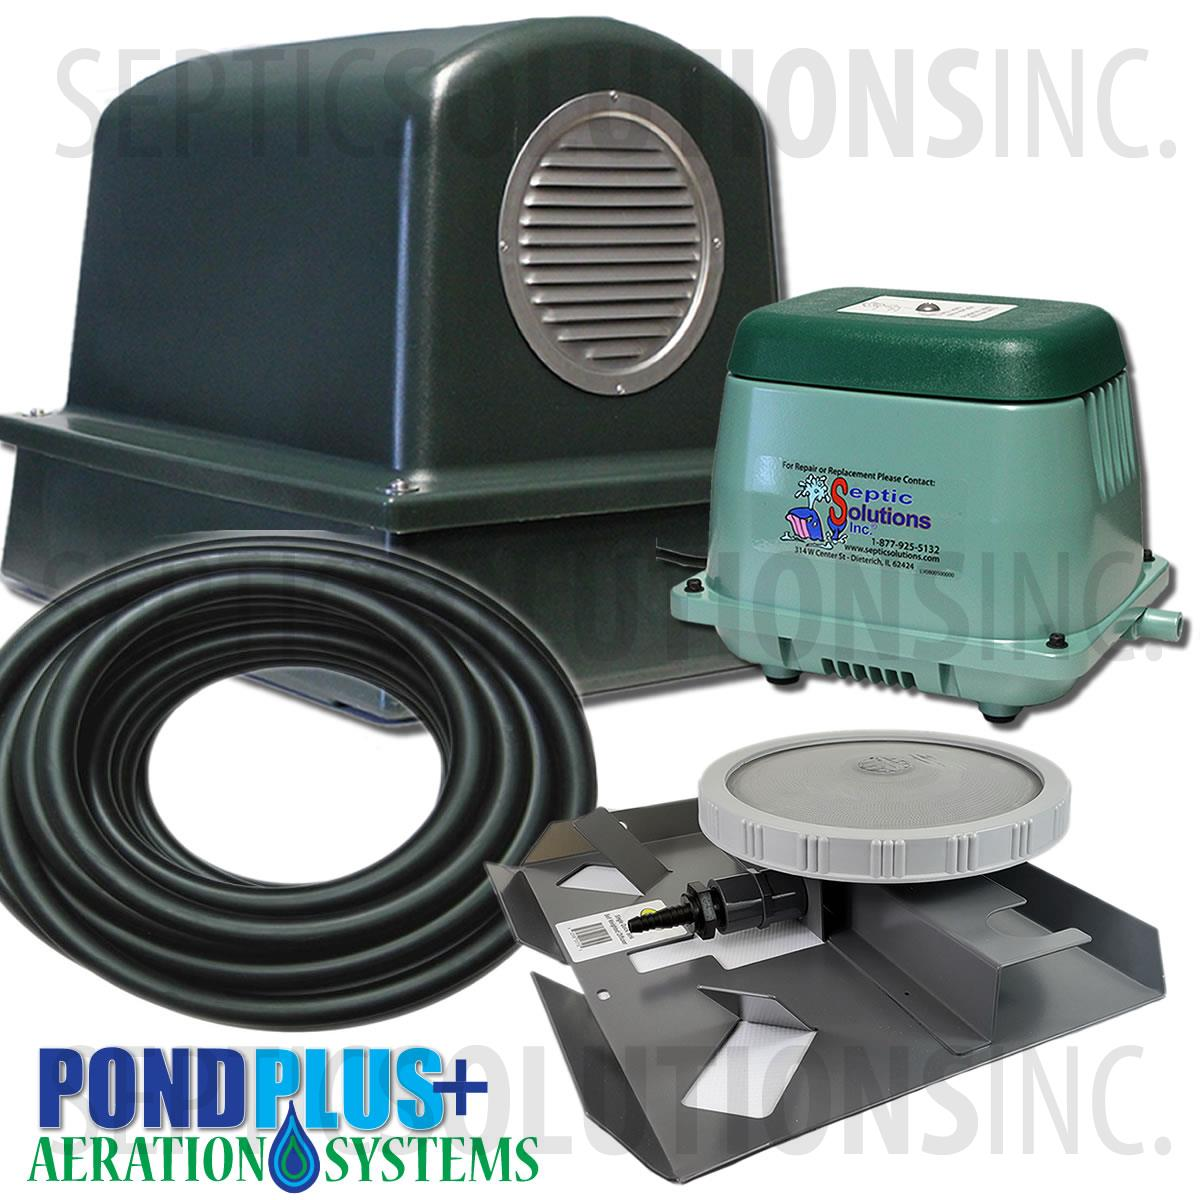 Pondair p o2 1001 small pond aeration system for Best pond pump for small pond